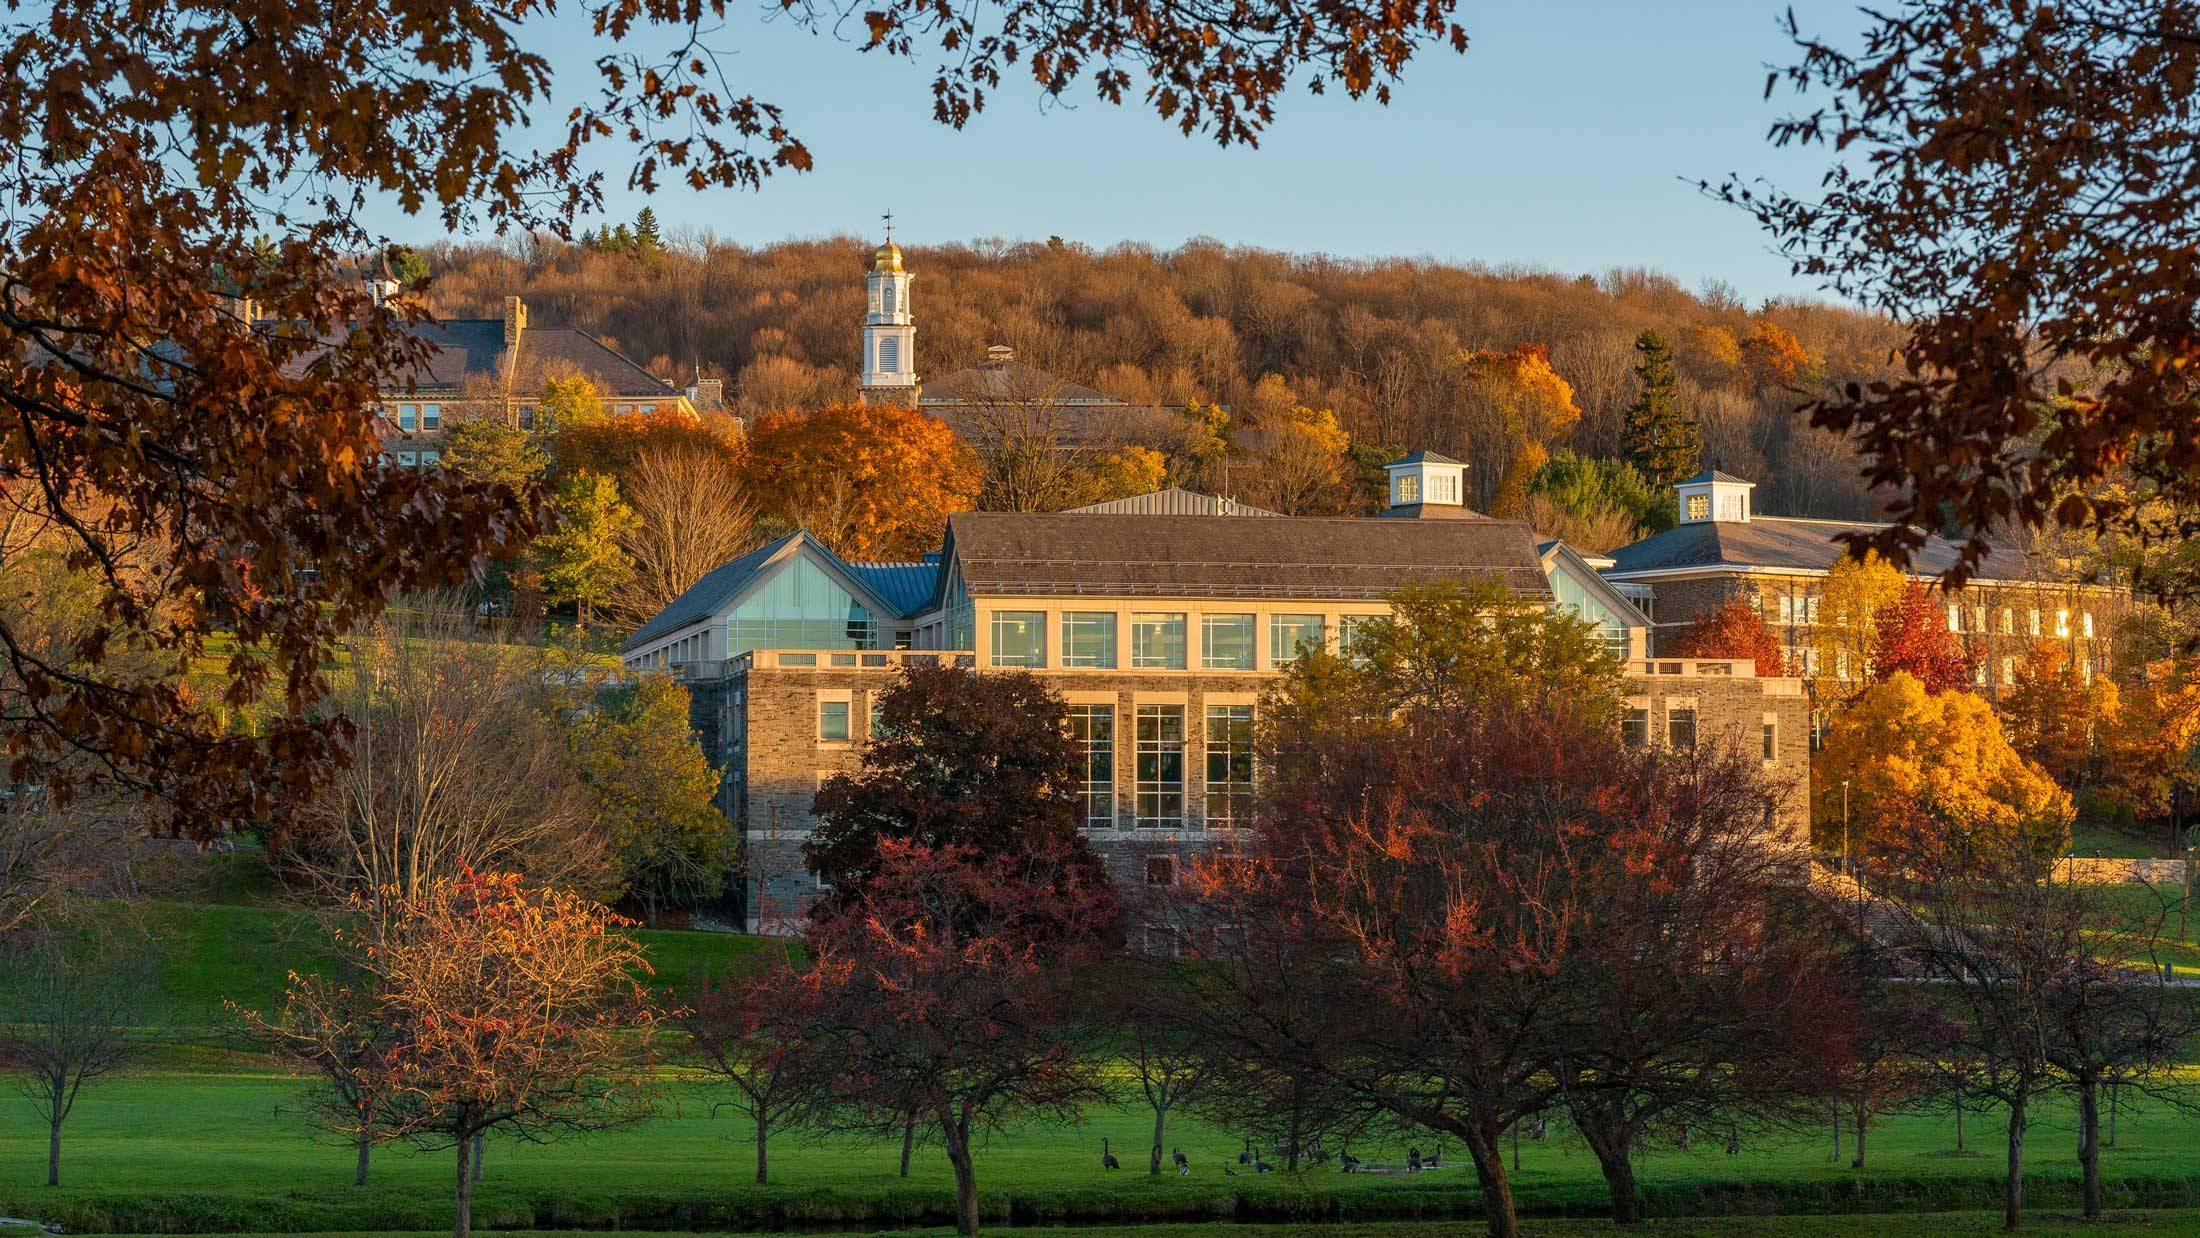 Colgate campus in the autumn